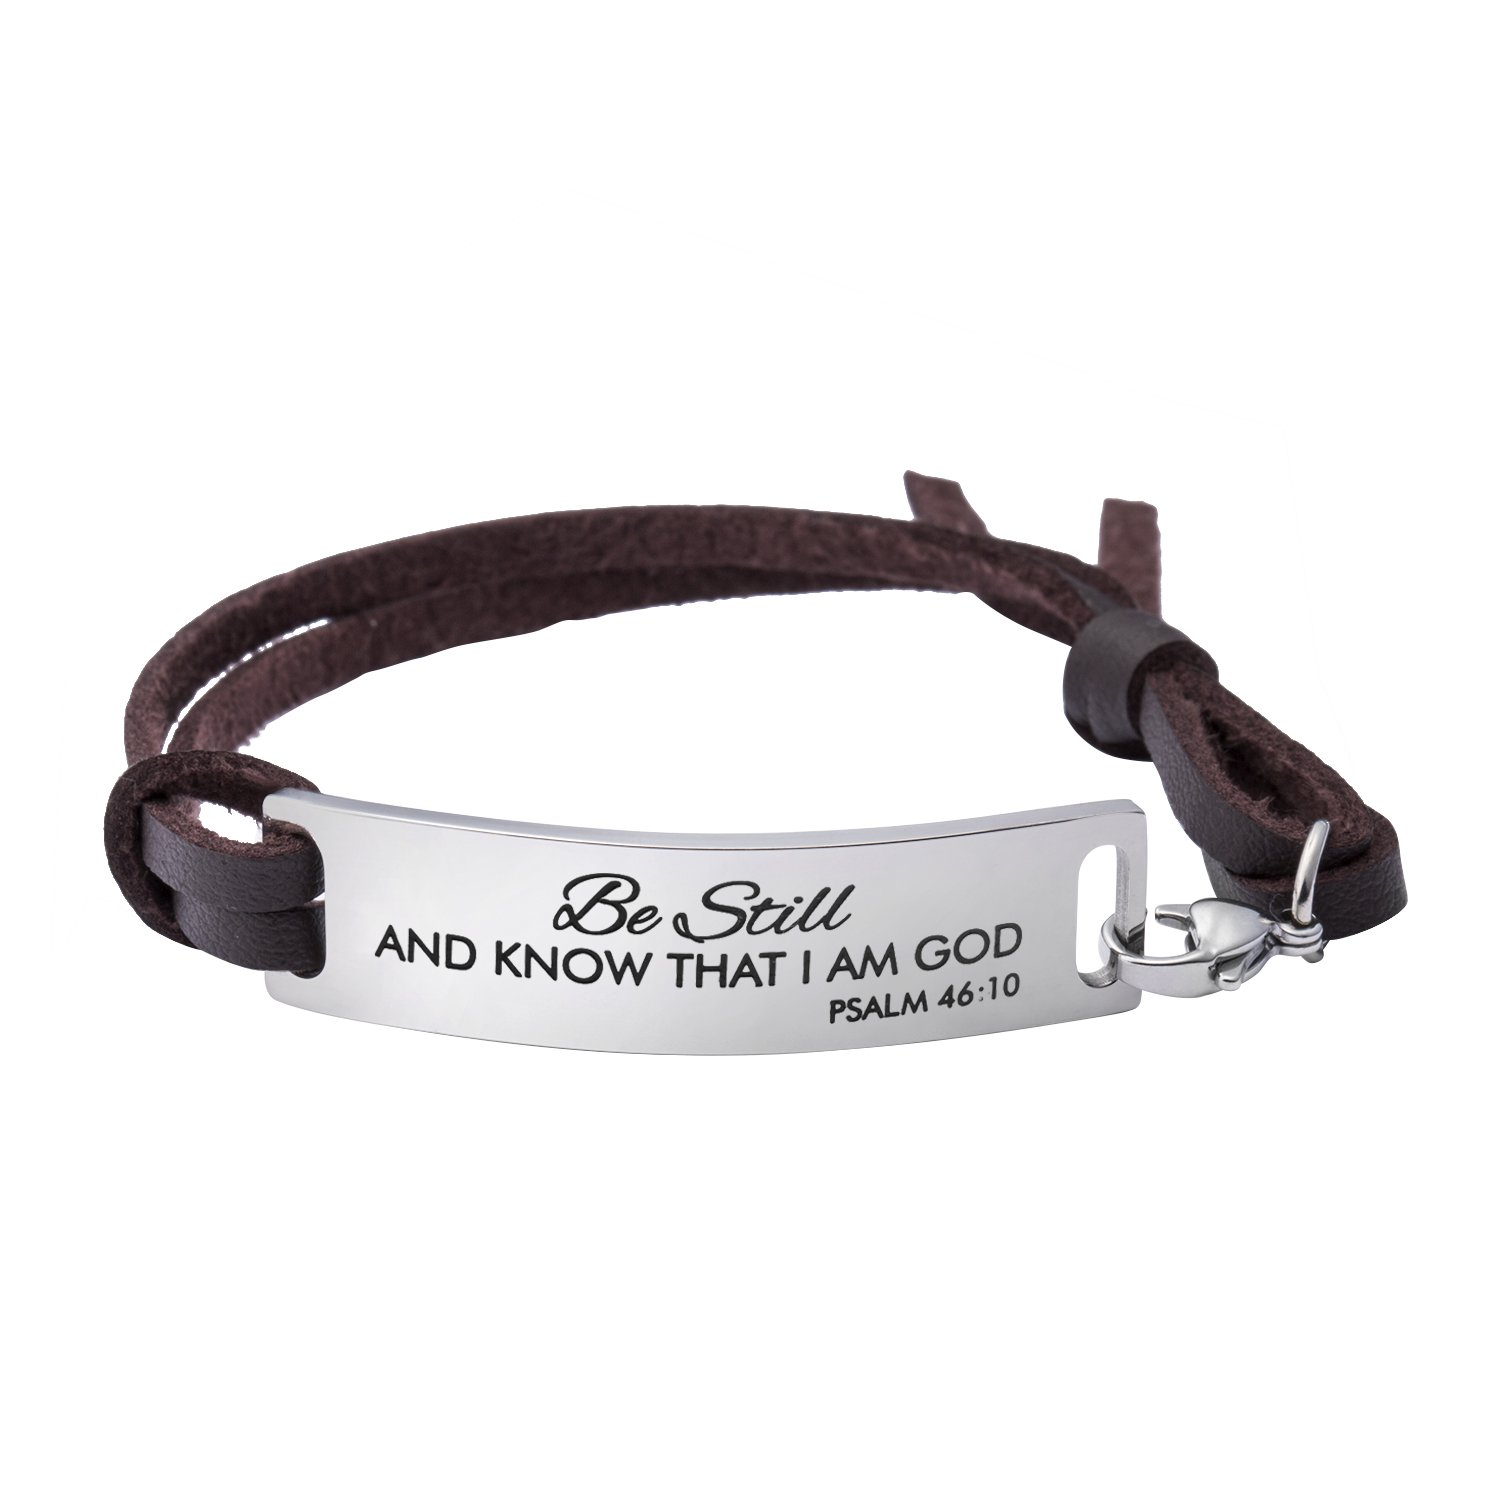 Yiyang Inspirational Leather Bracelet for Women Christian Engraved Bibler Verse Silver Stainless Steel Jewelry Birthday Jewelry Gifts Be Still and Know I Am God Brown